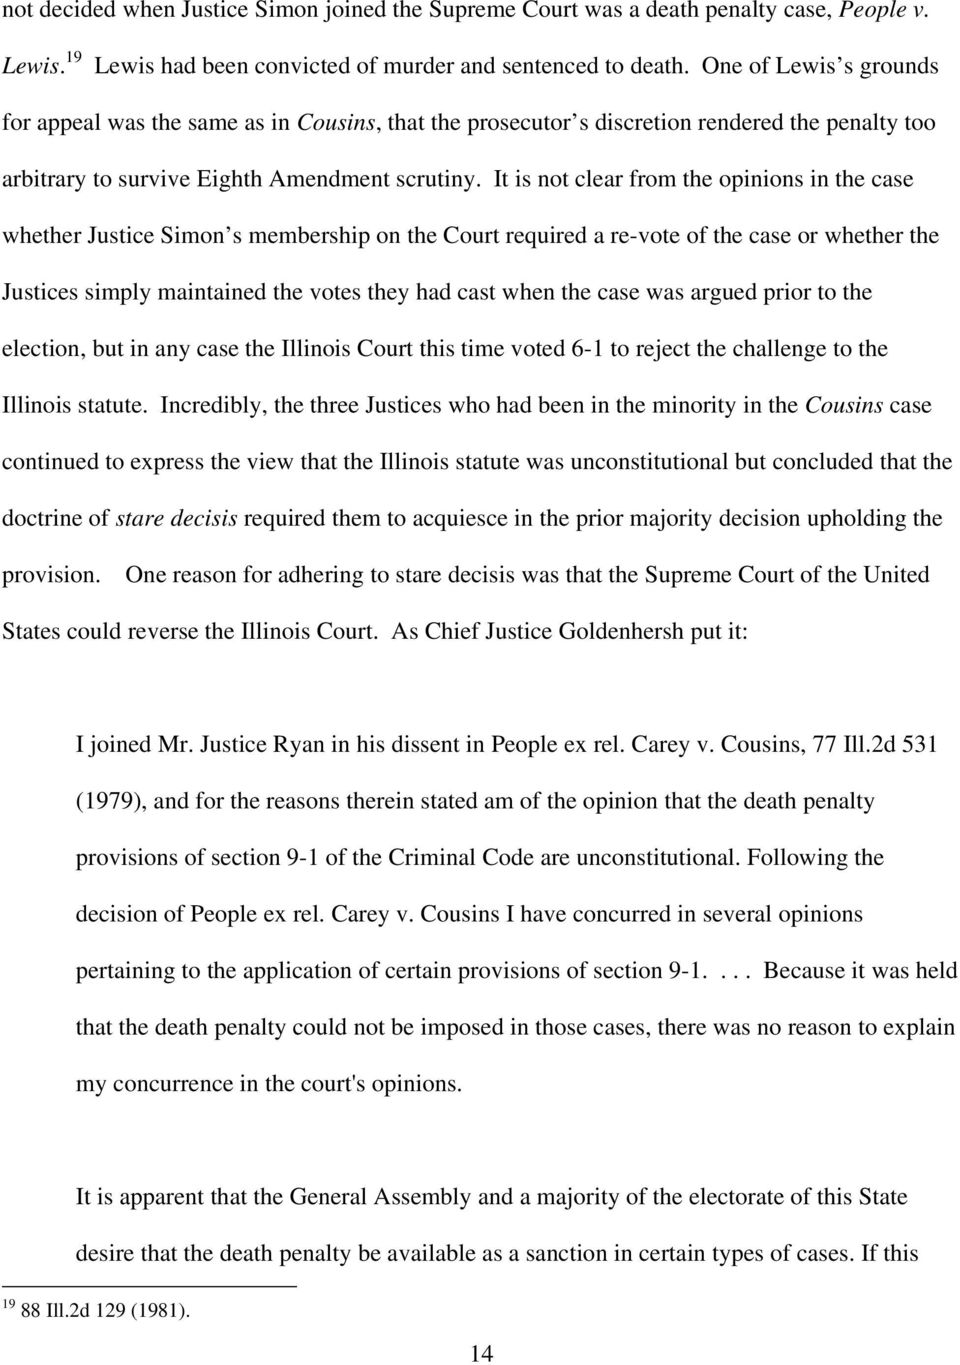 It is not clear from the opinions in the case whether Justice Simon s membership on the Court required a re-vote of the case or whether the Justices simply maintained the votes they had cast when the